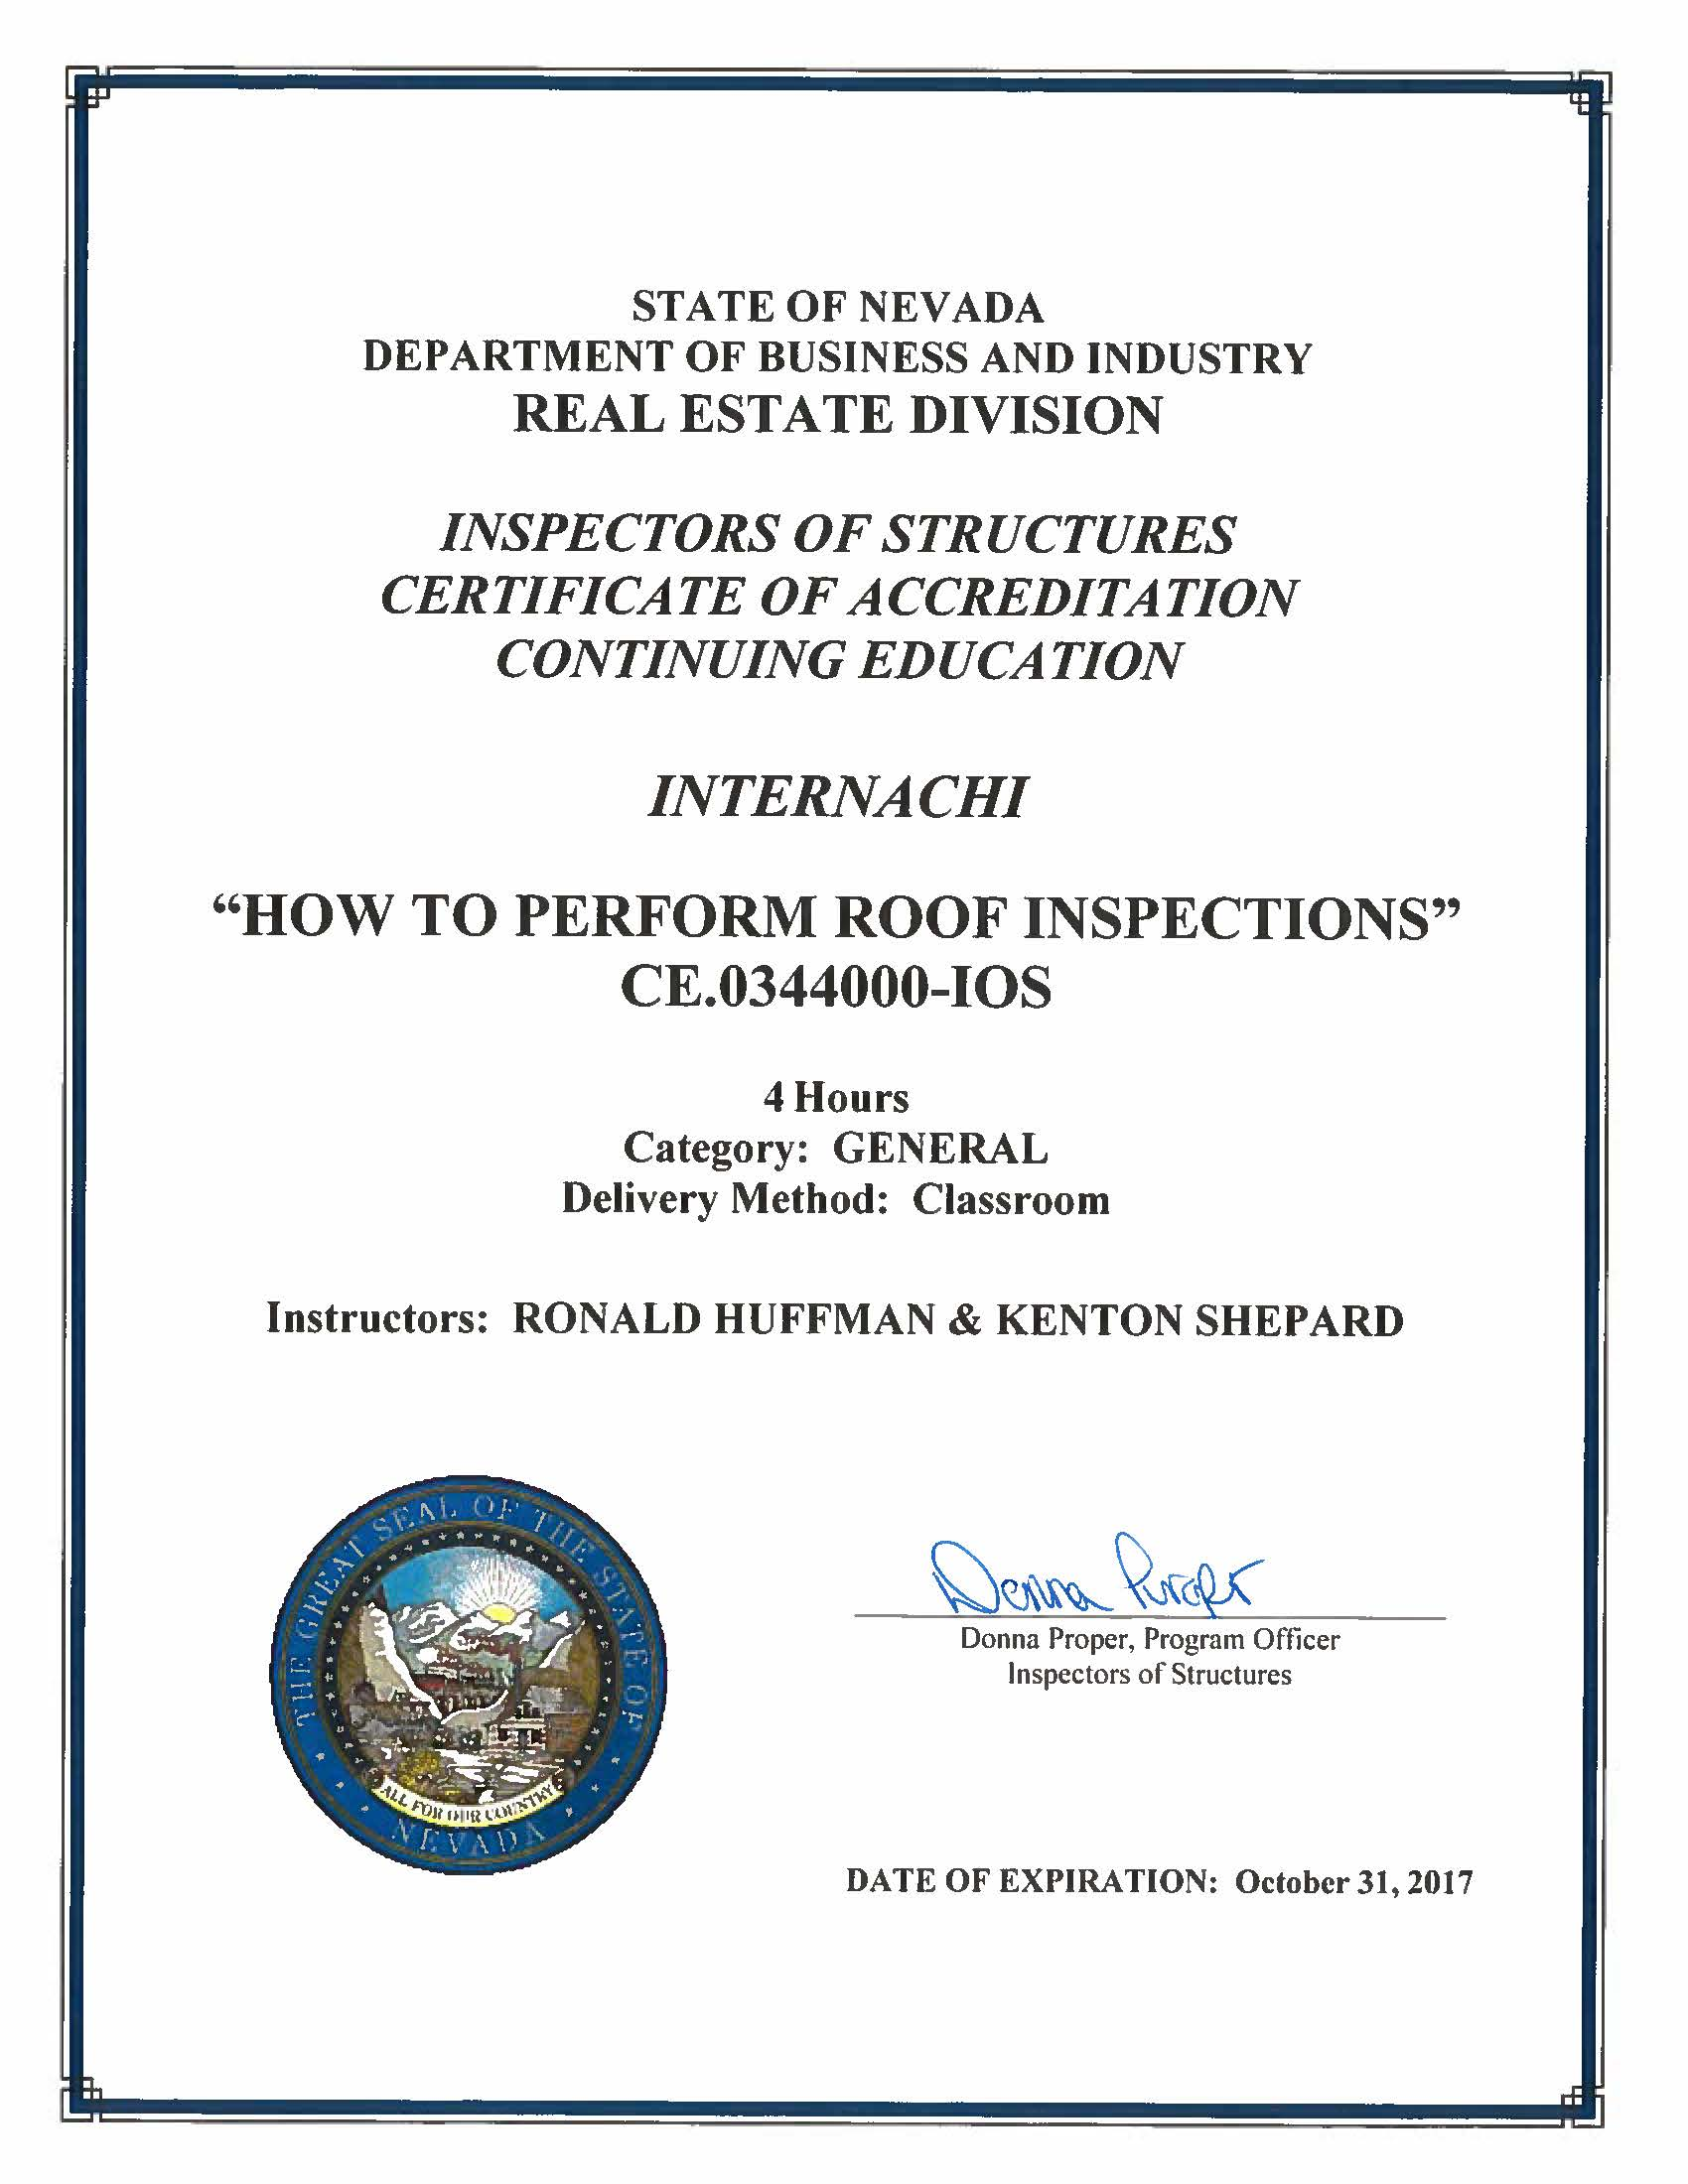 How to become a certified home inspector in nevada internachi ce0344000 ios 4 hours general classroom ronald huffman and kenton shepard instructors expiration october 31 2017 1betcityfo Image collections